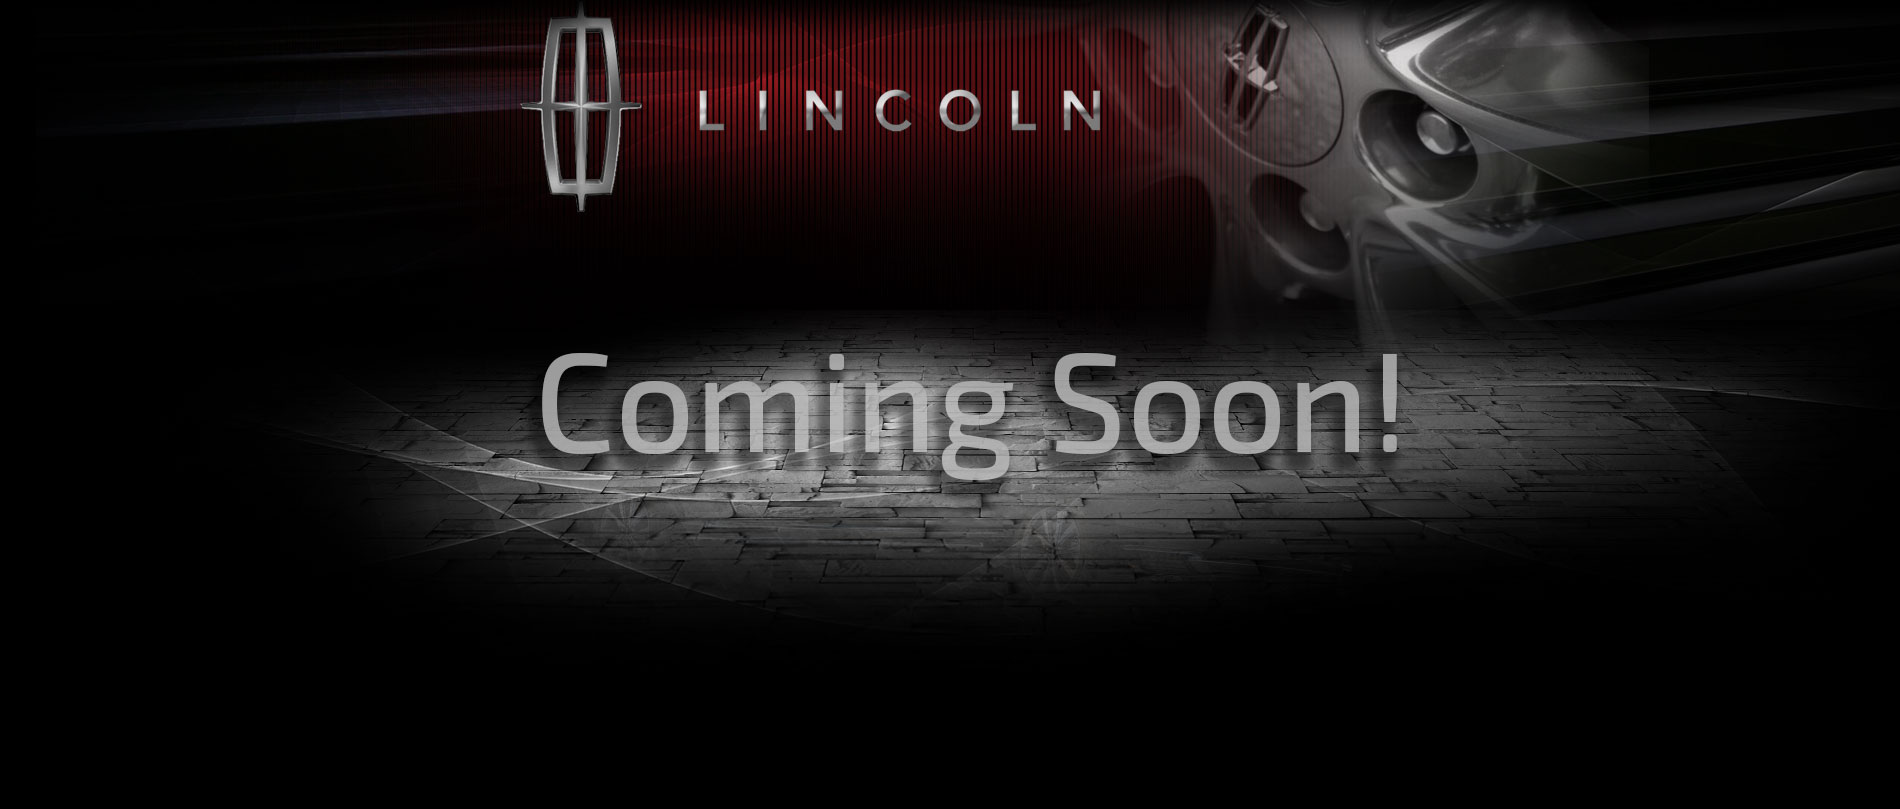 Lincoln-Limo-Placeholder